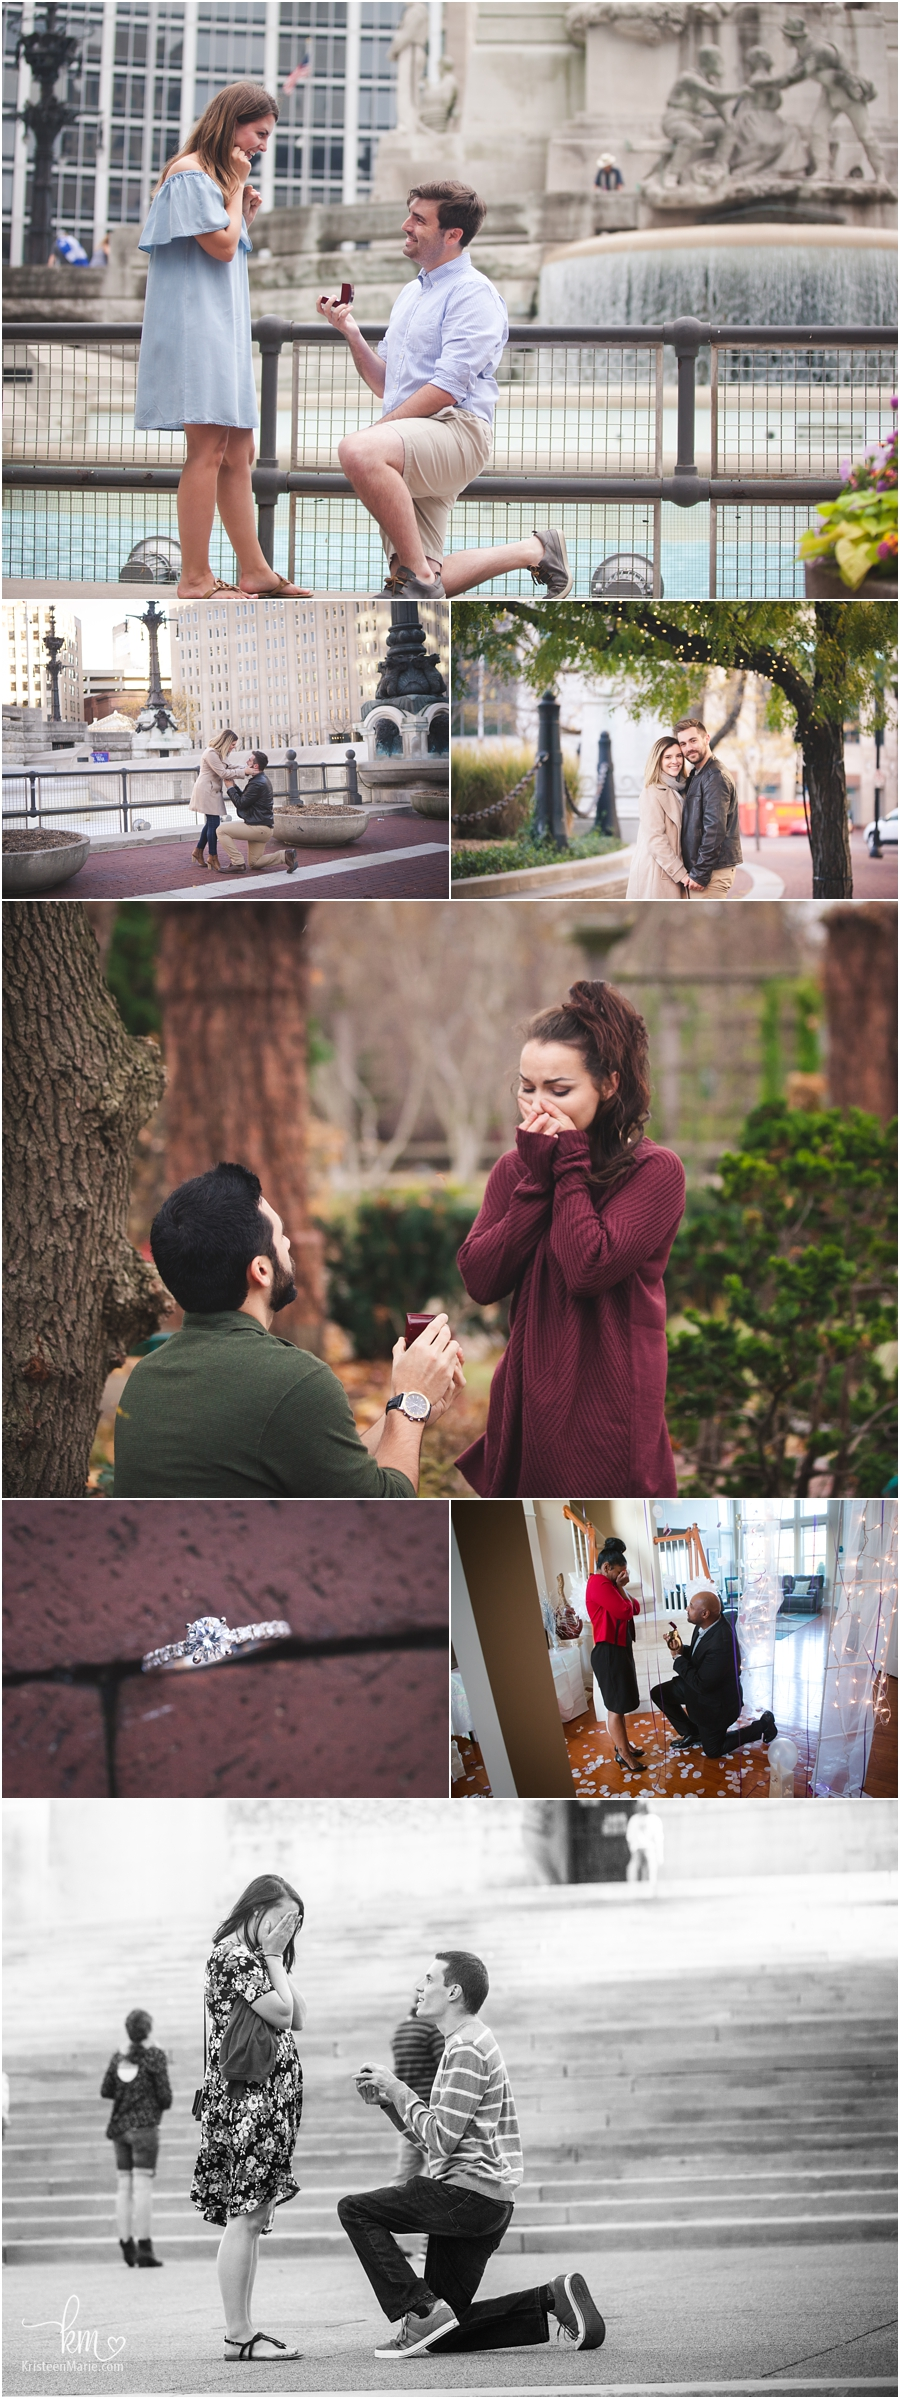 Propsals in Indianapolis - Indianapolis proposal photographer